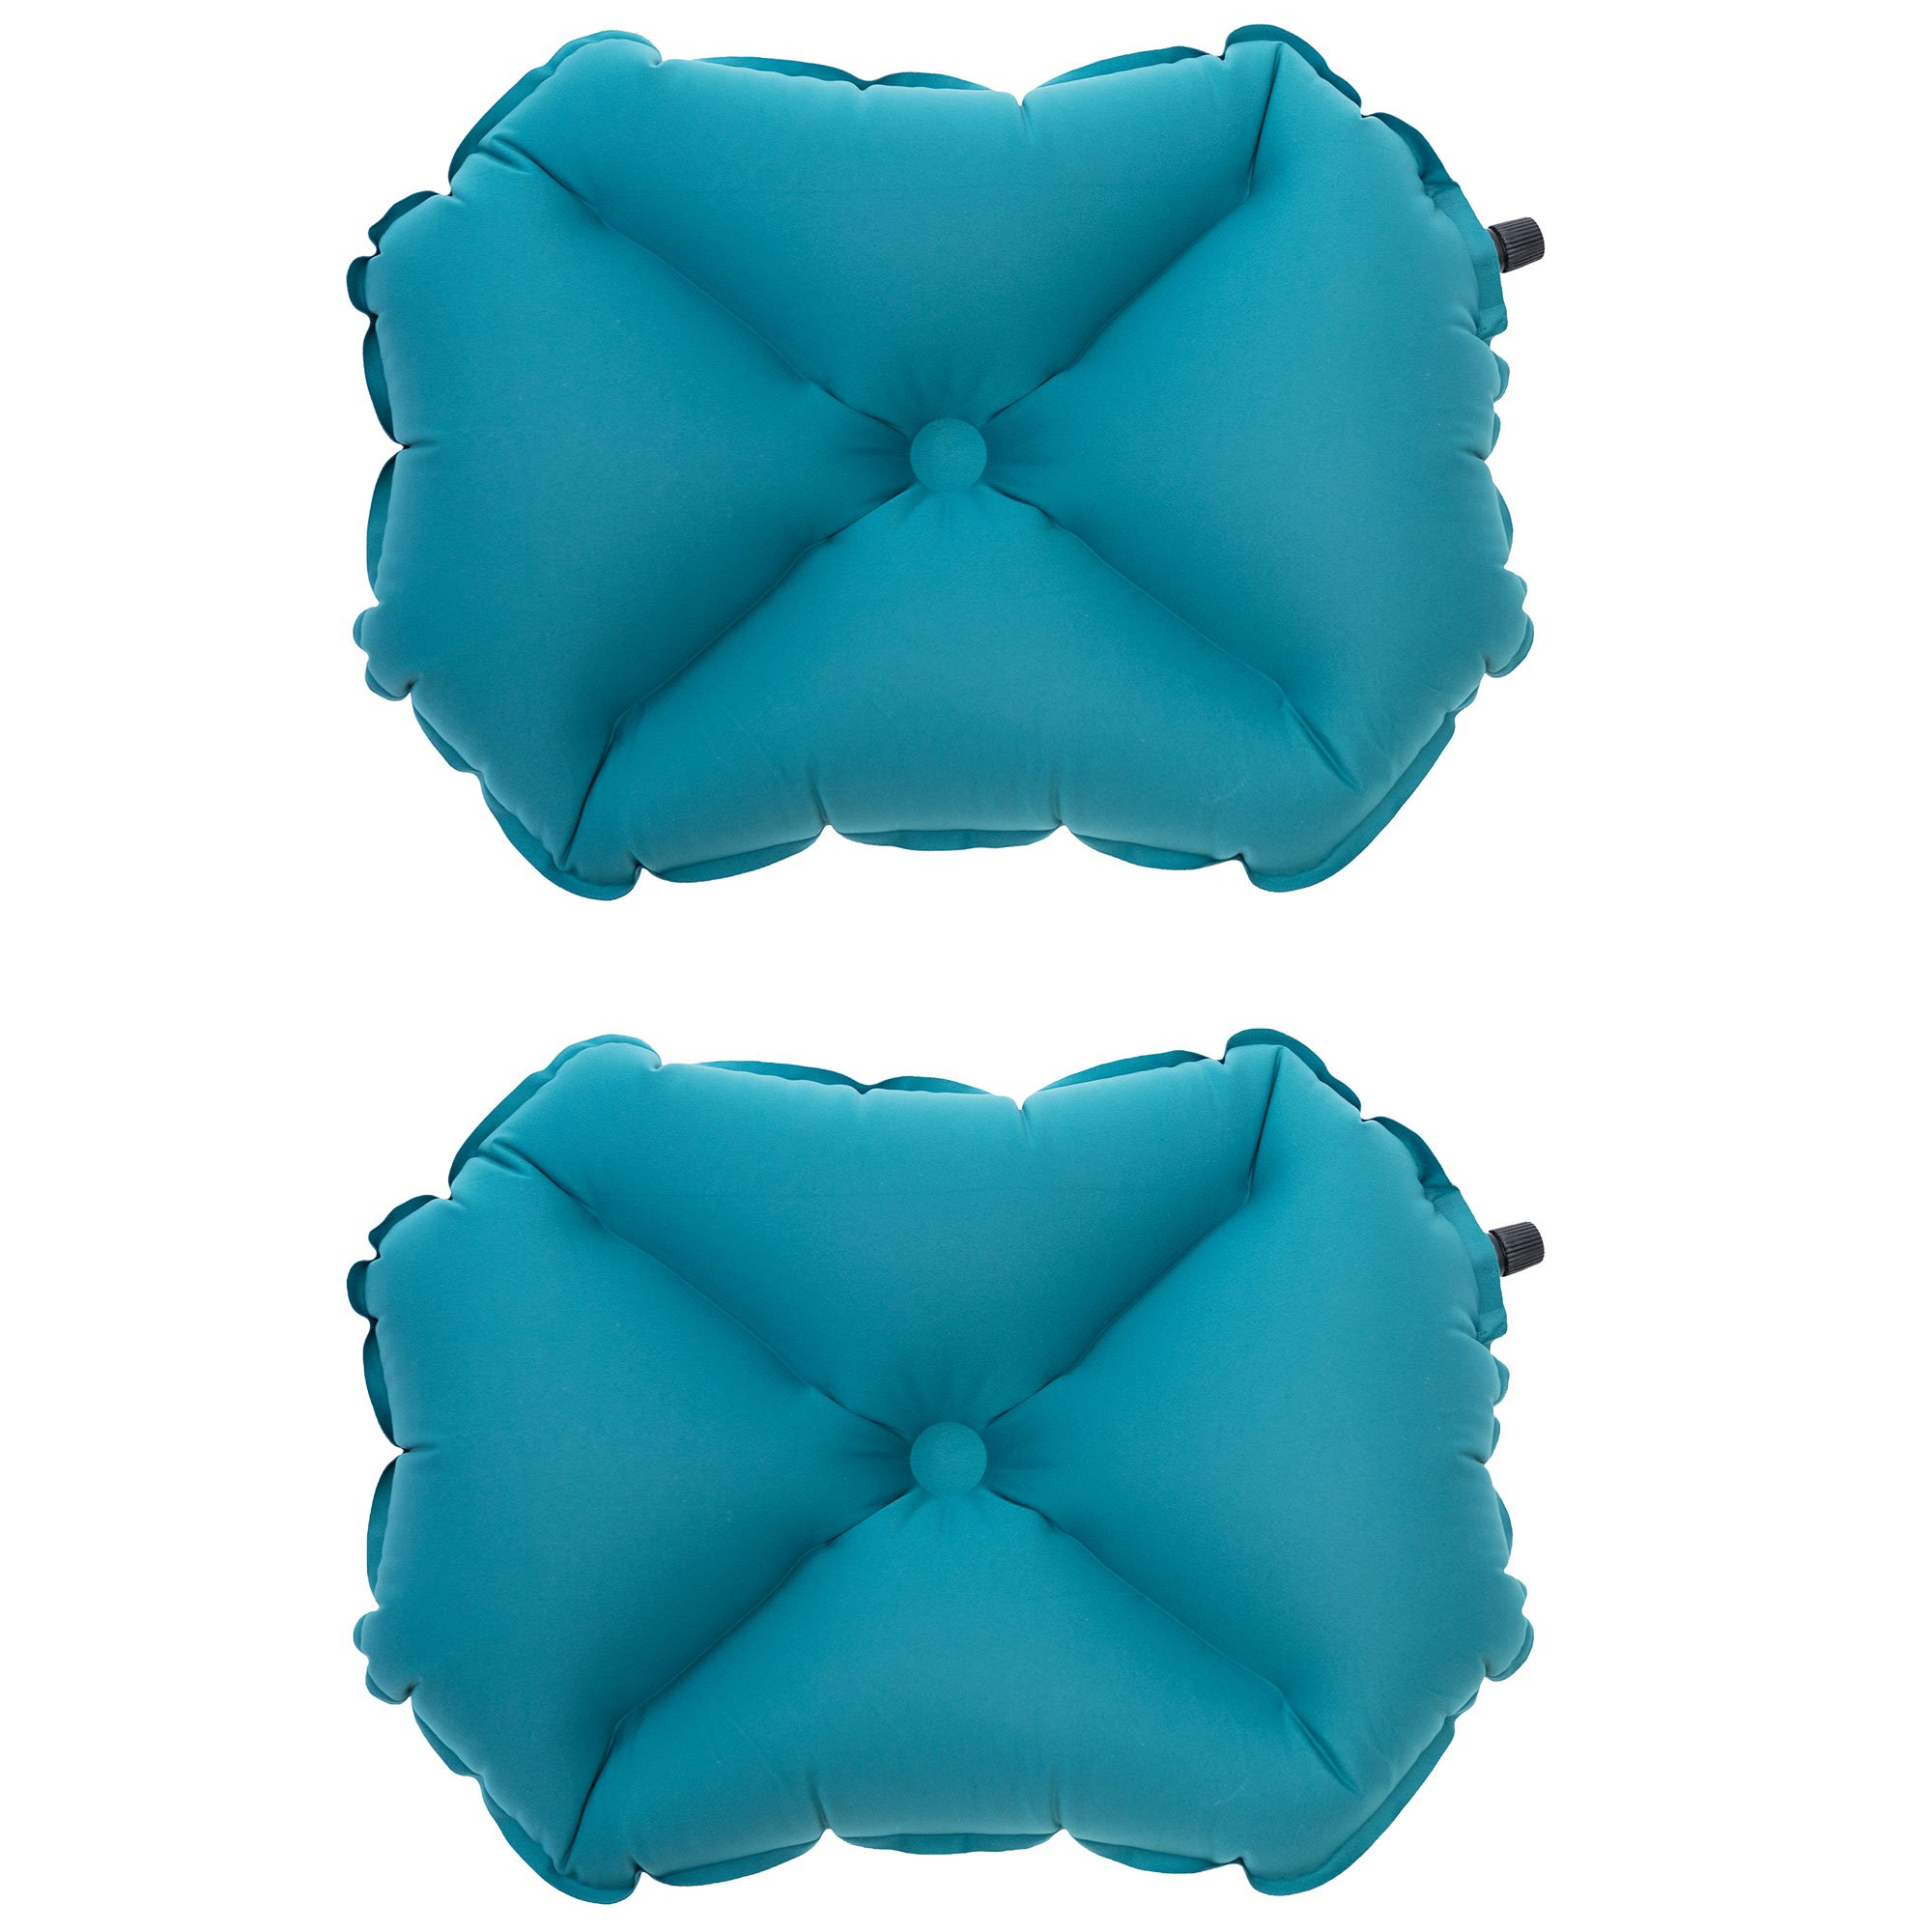 Klymit Pillow XL Soft Inflatable Outdoor Travel Camping Pillow, Teal (2 Pack)